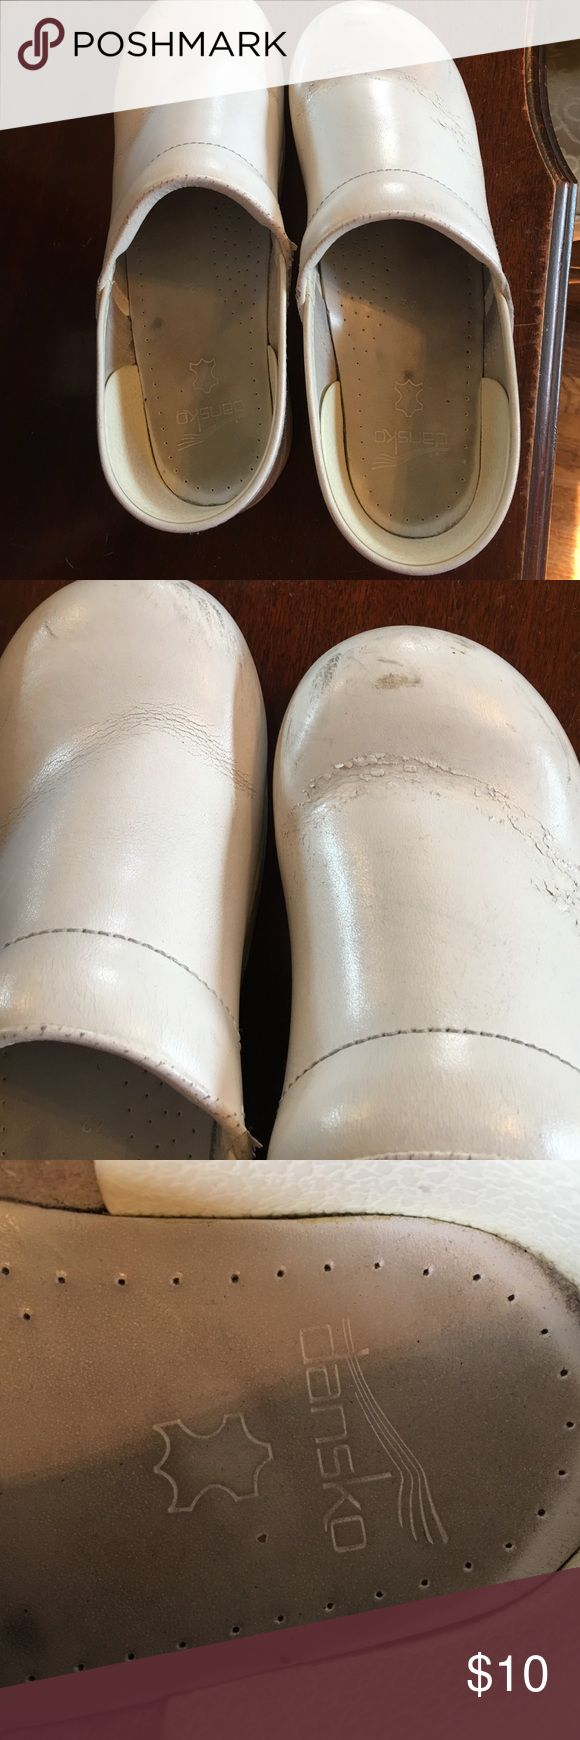 Dansko white nursing shoes. White Dansko nursing shoes. Signs of wear but still have life. Dansko Shoes Mules & Clogs